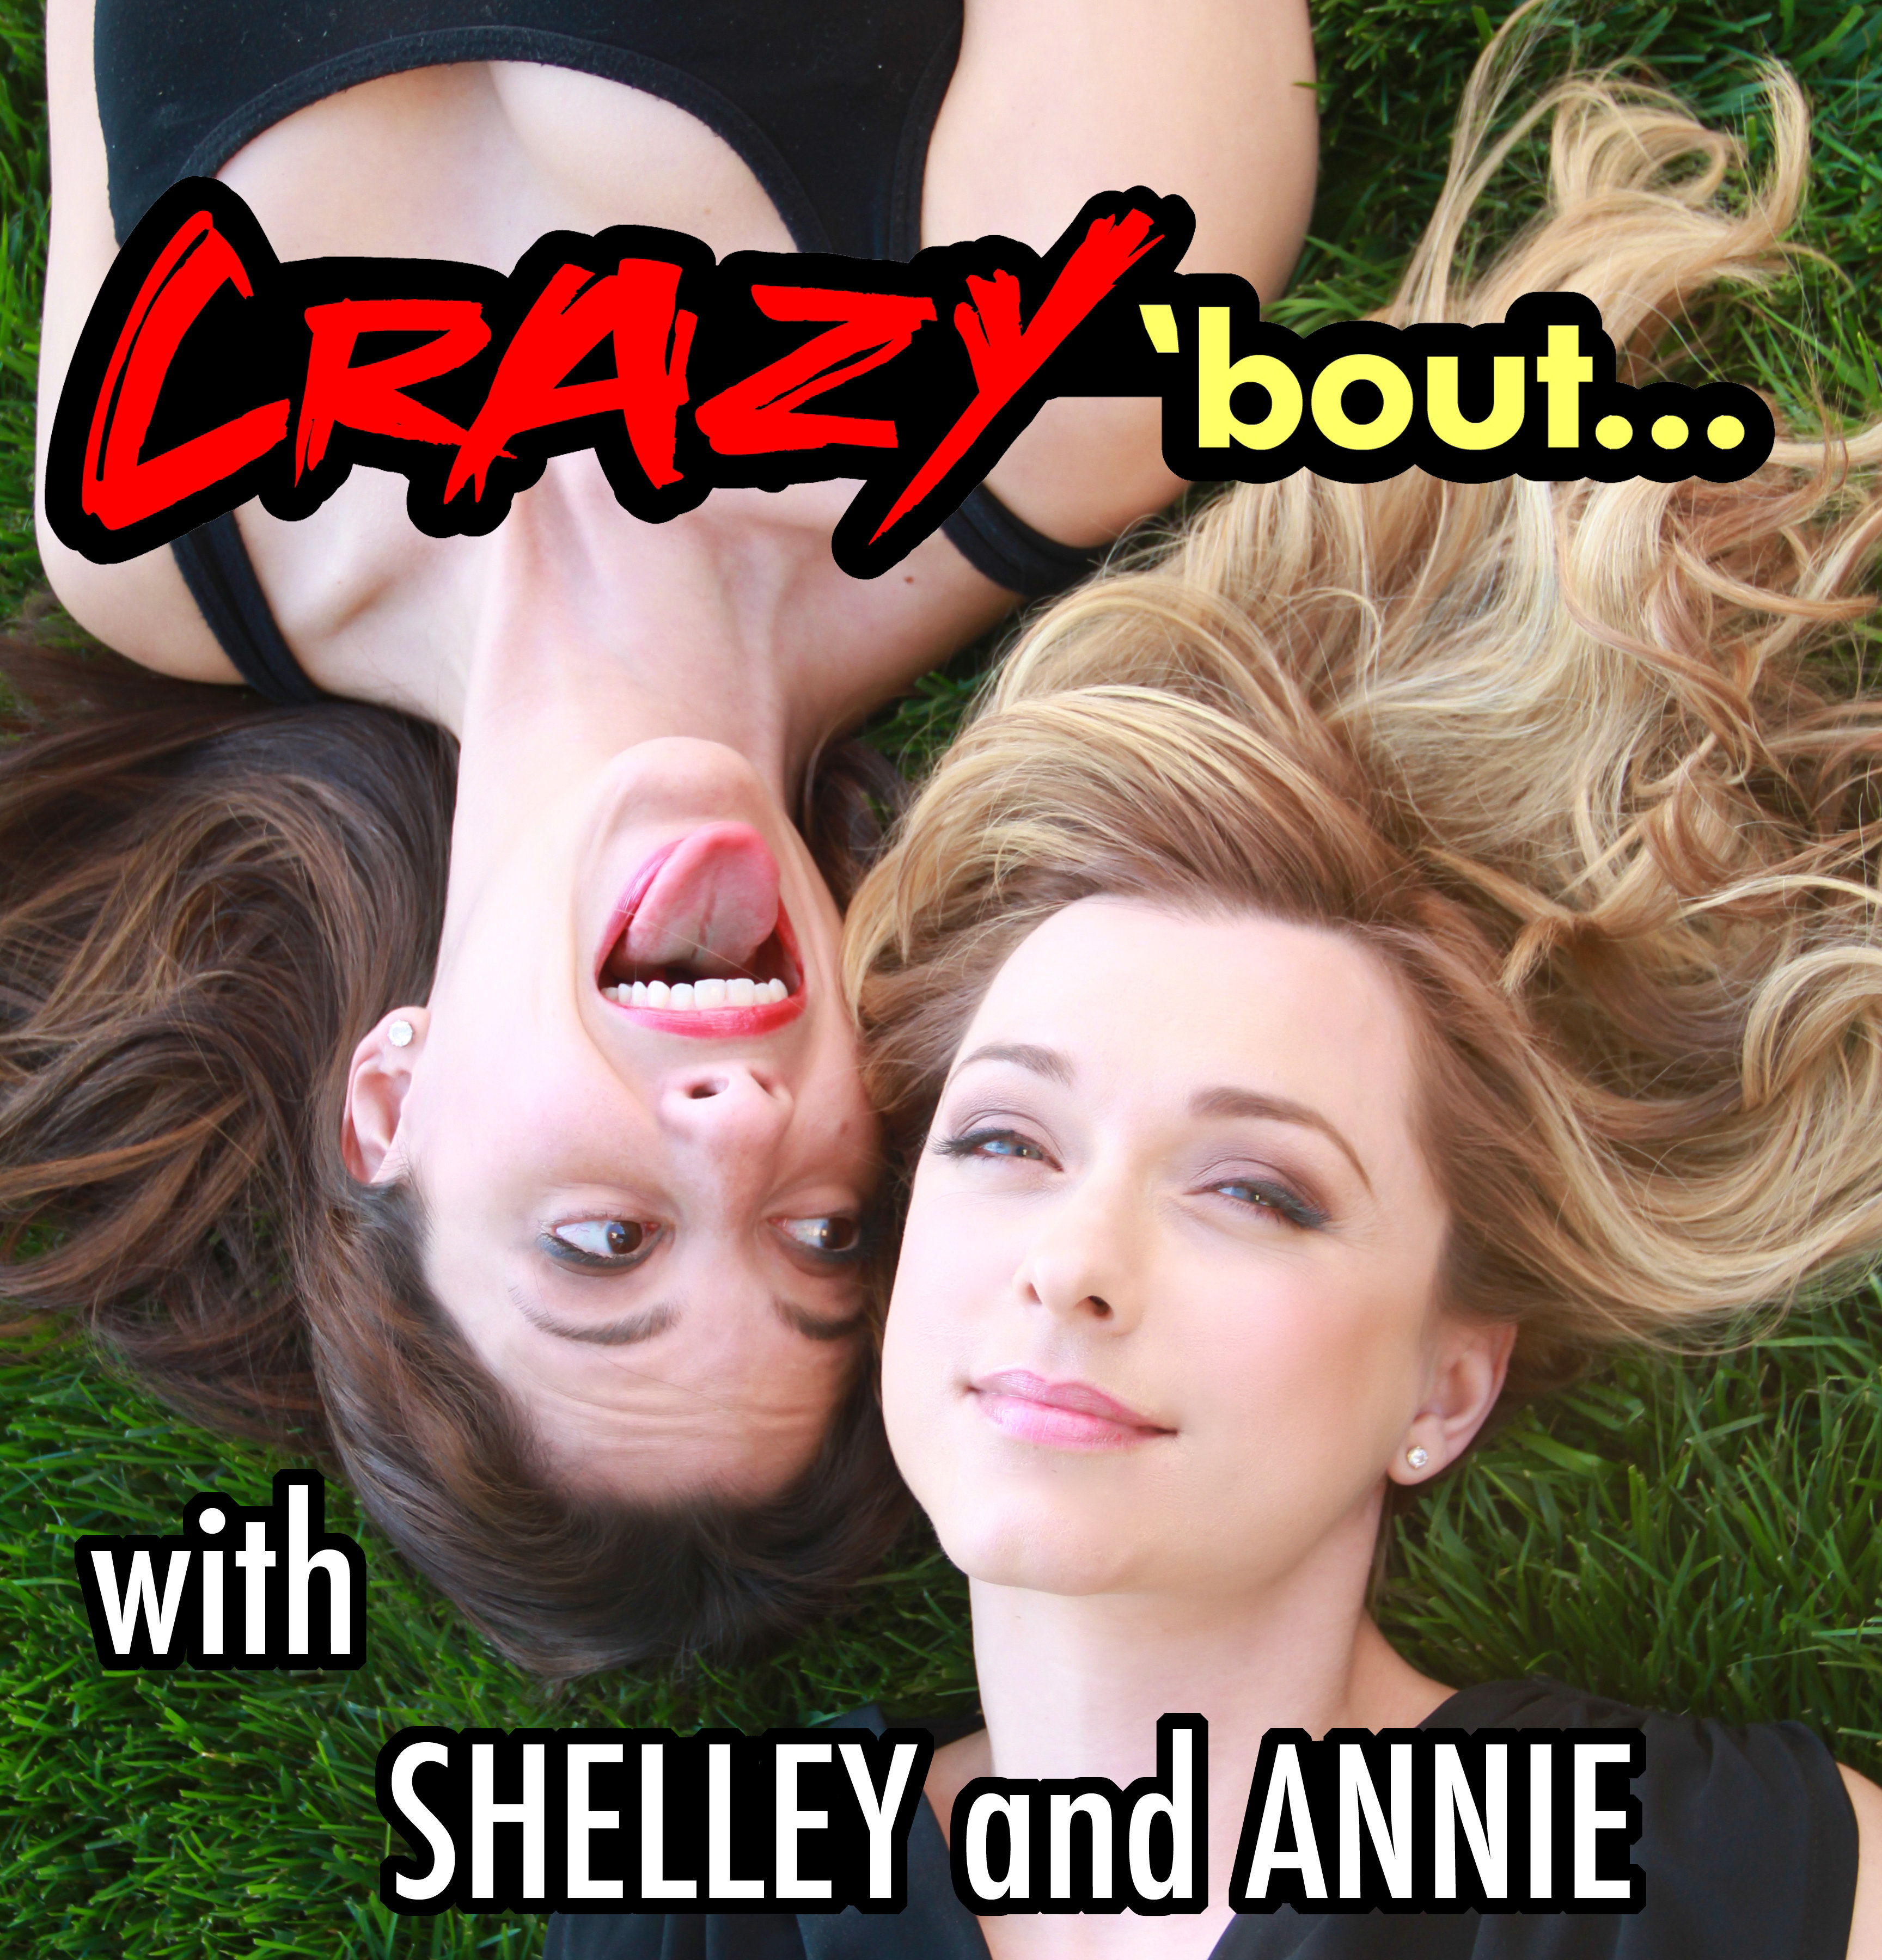 Crazy 'bout... with Shelley and Annie (2012)